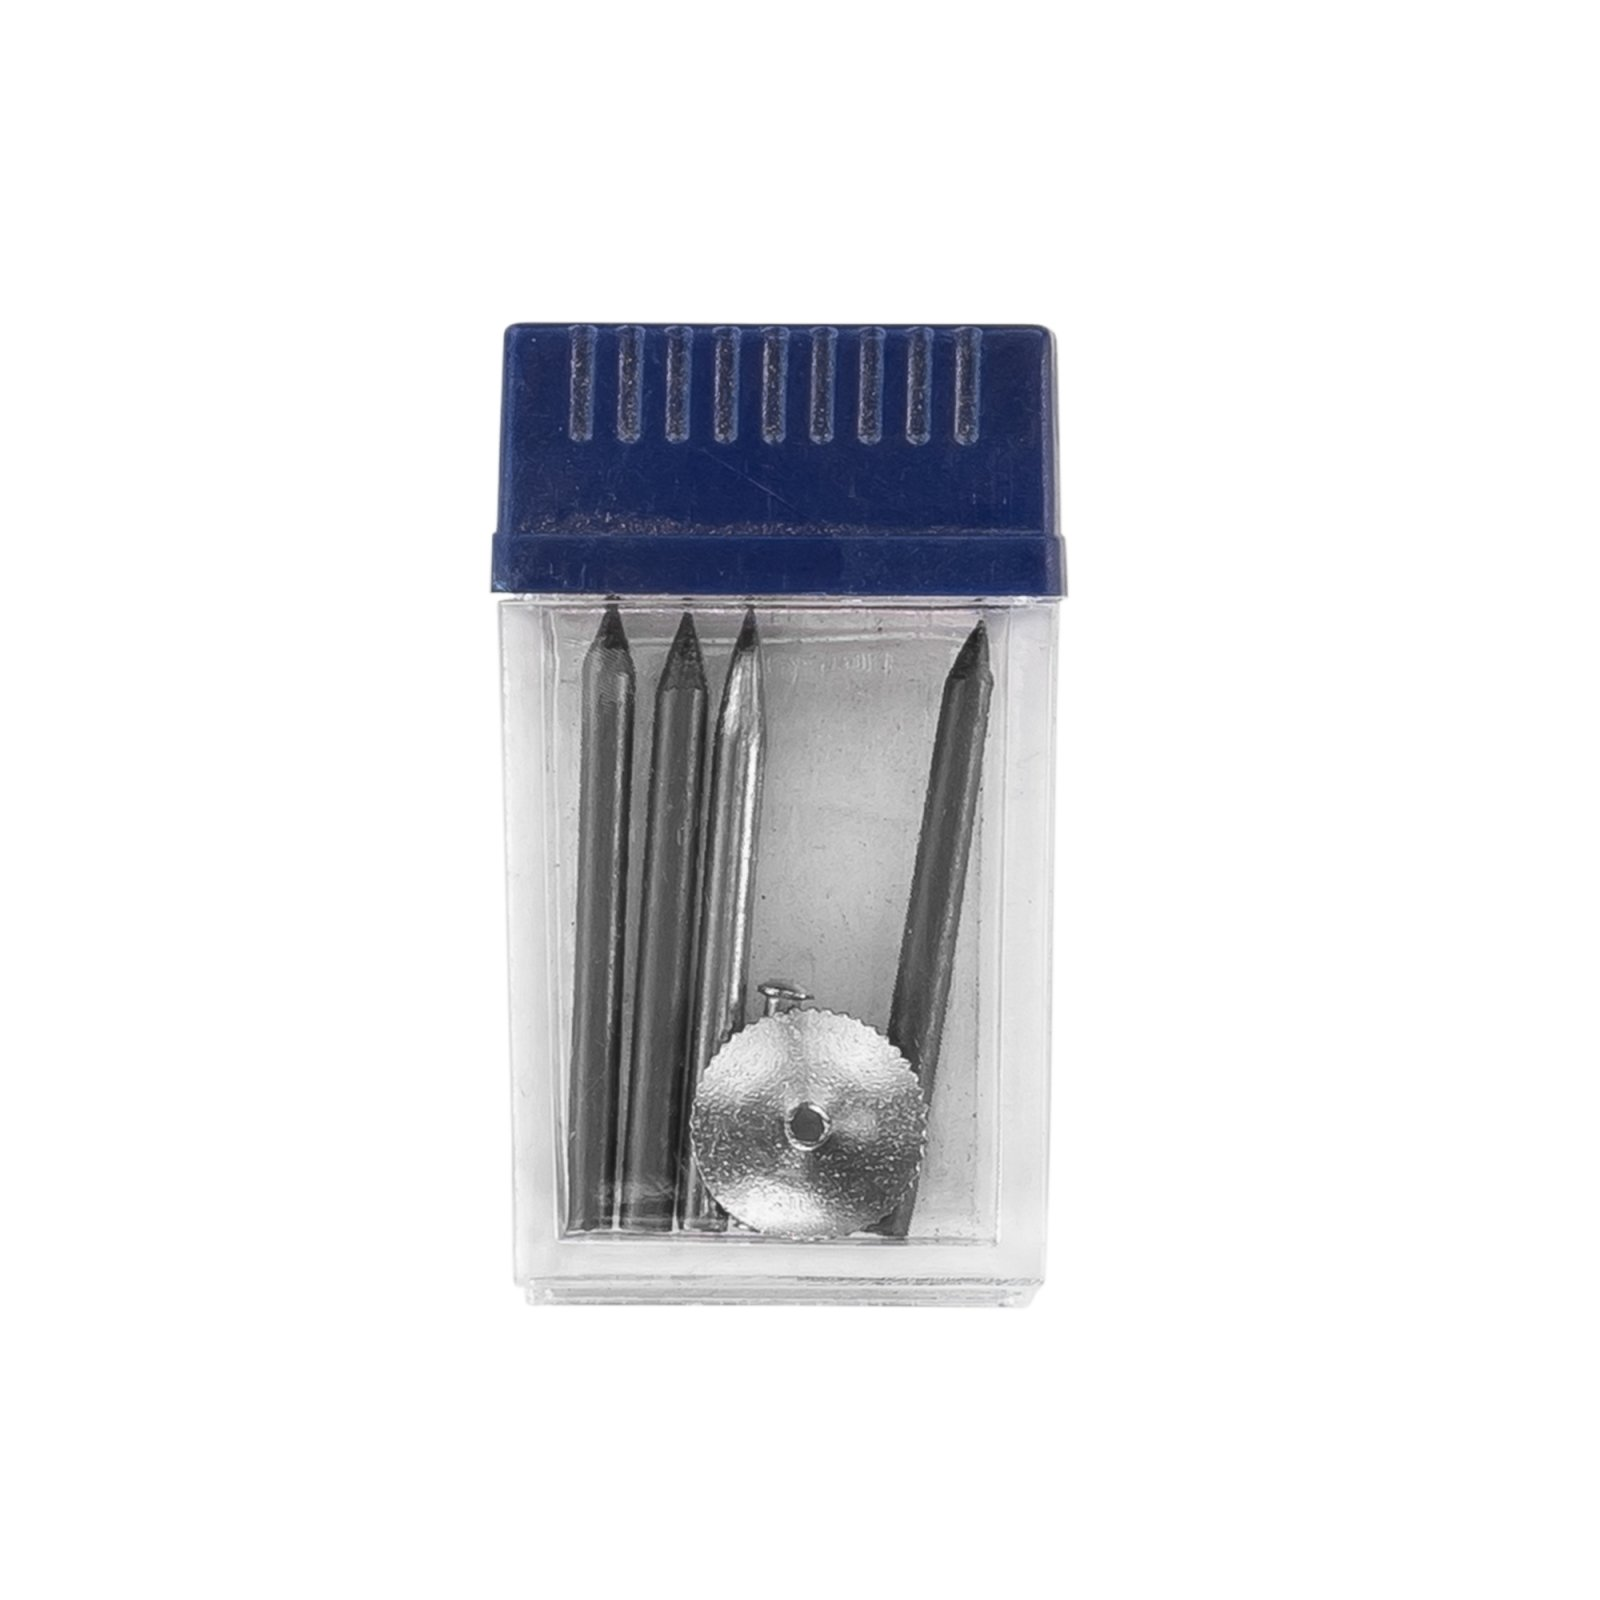 Bow Compass Spare Parts Kit